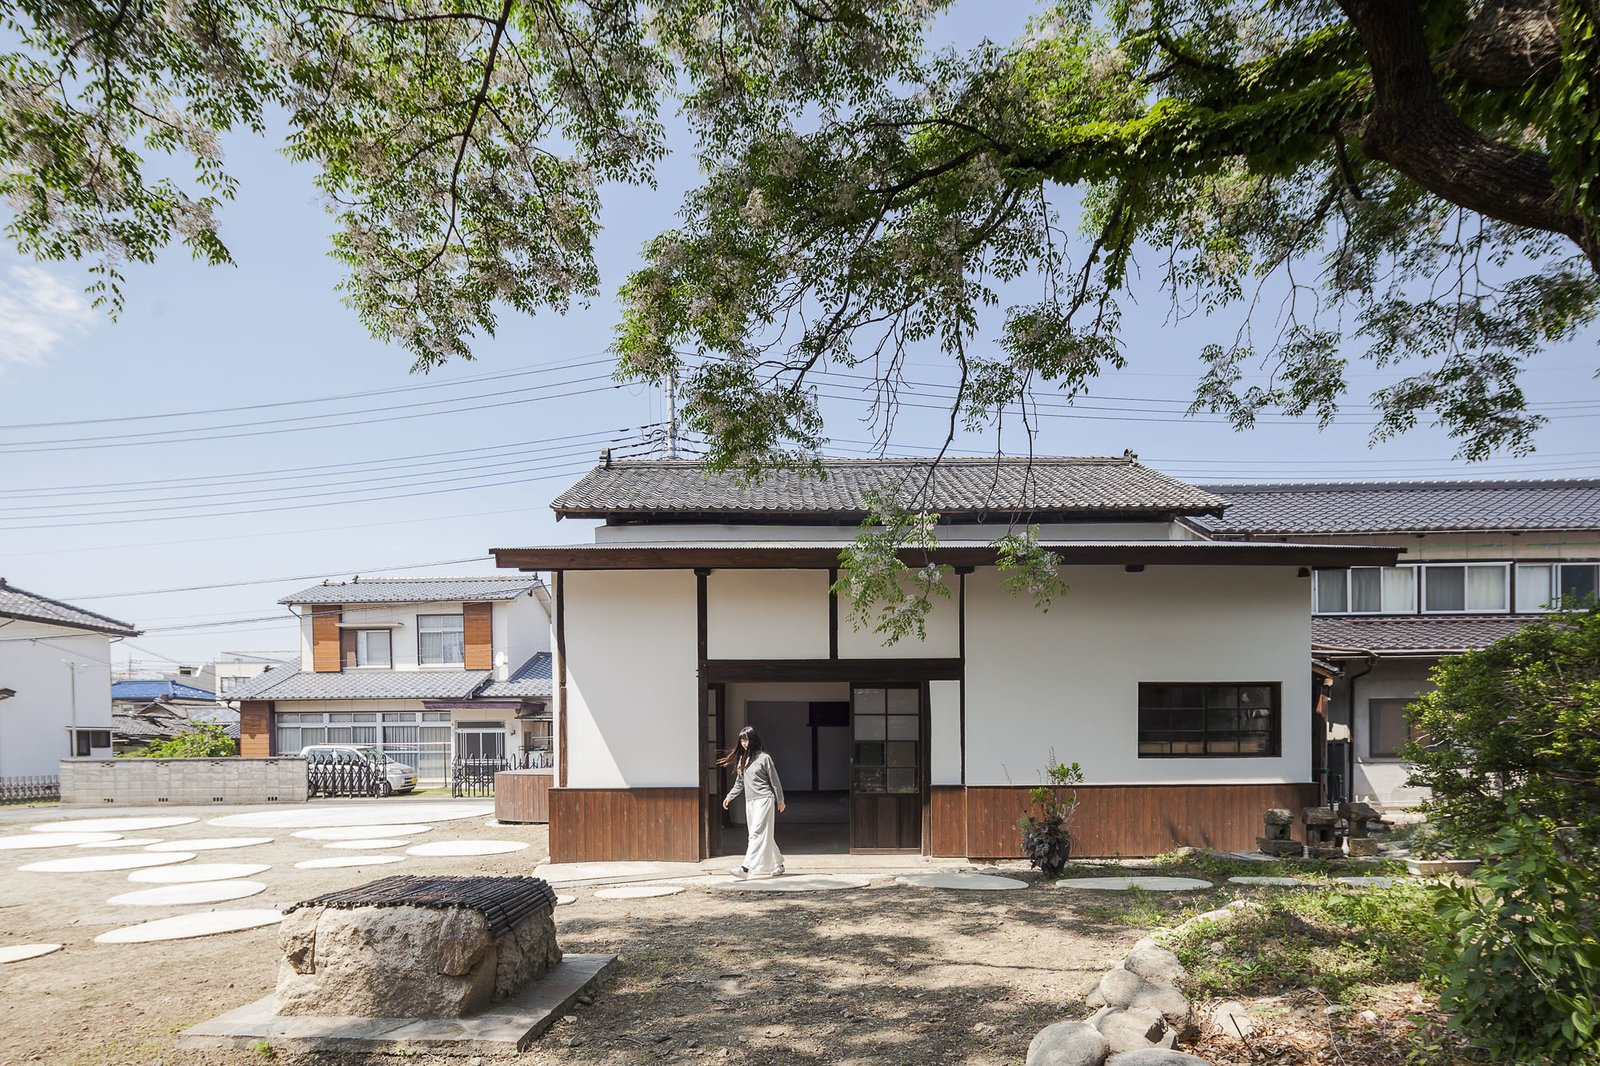 Exterior, House Building Type, Tile Roof Material, and Wood Siding Material New circular plinths, a nod to stepping stones found in Japanese gardens, surround the structure to activate the vacant areas of the building lot.  Photo 8 of 8 in Saved From Demolition, a Japanese Sake Warehouse Sees a Second Life